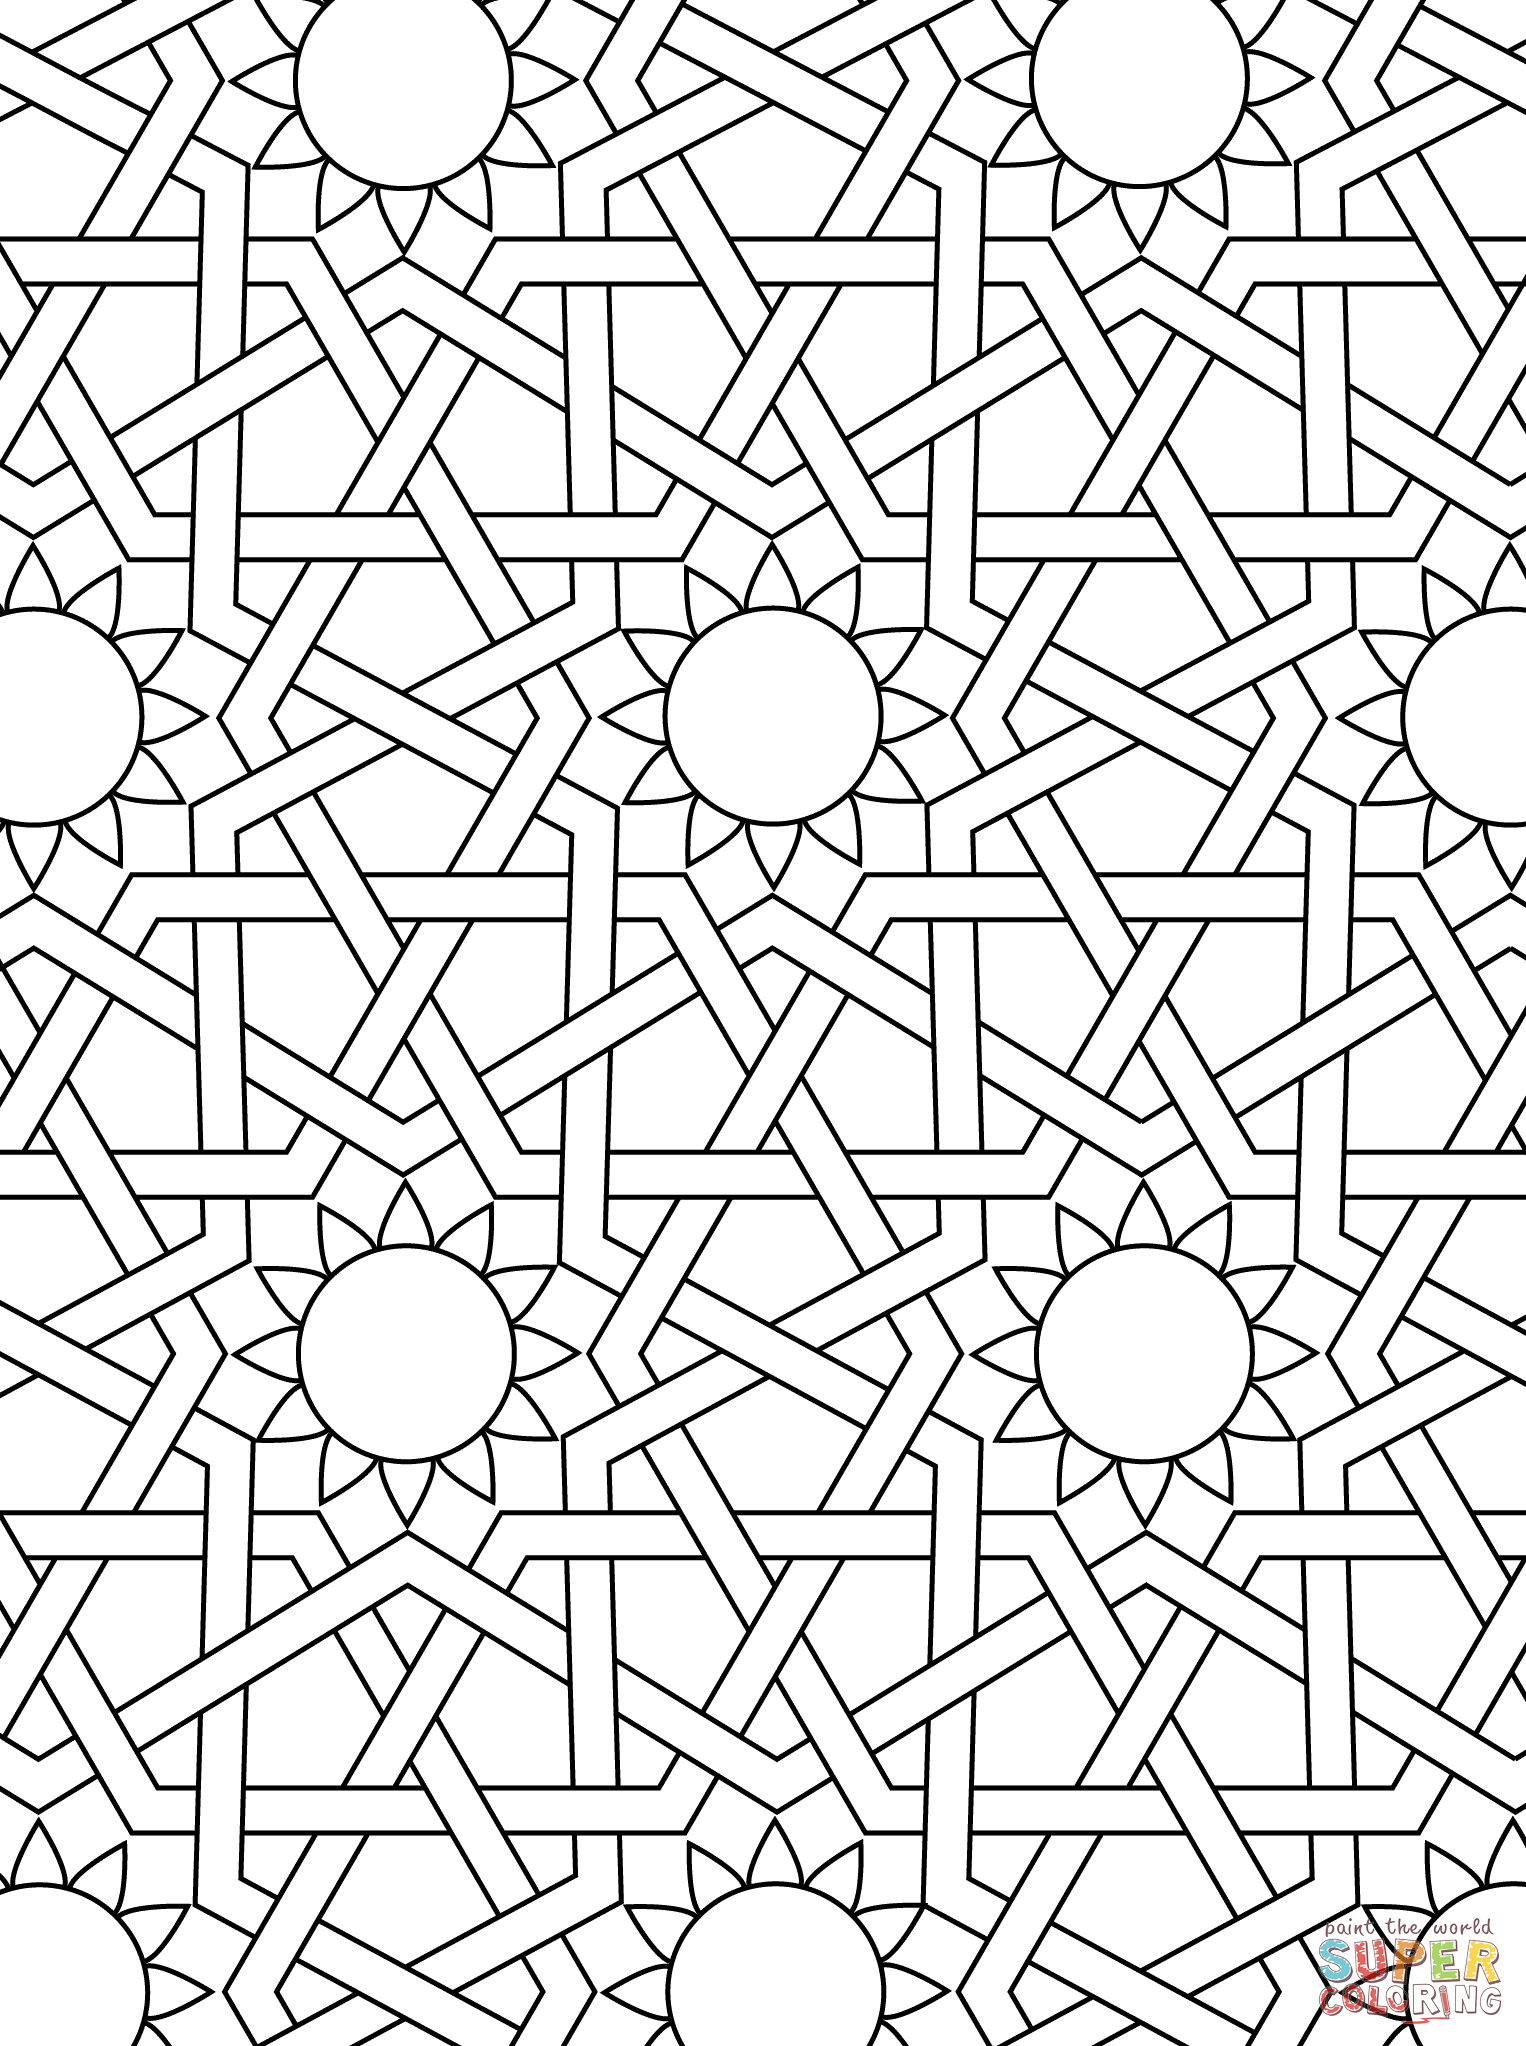 Islamic Ornament Mosaic coloring page Art Deco